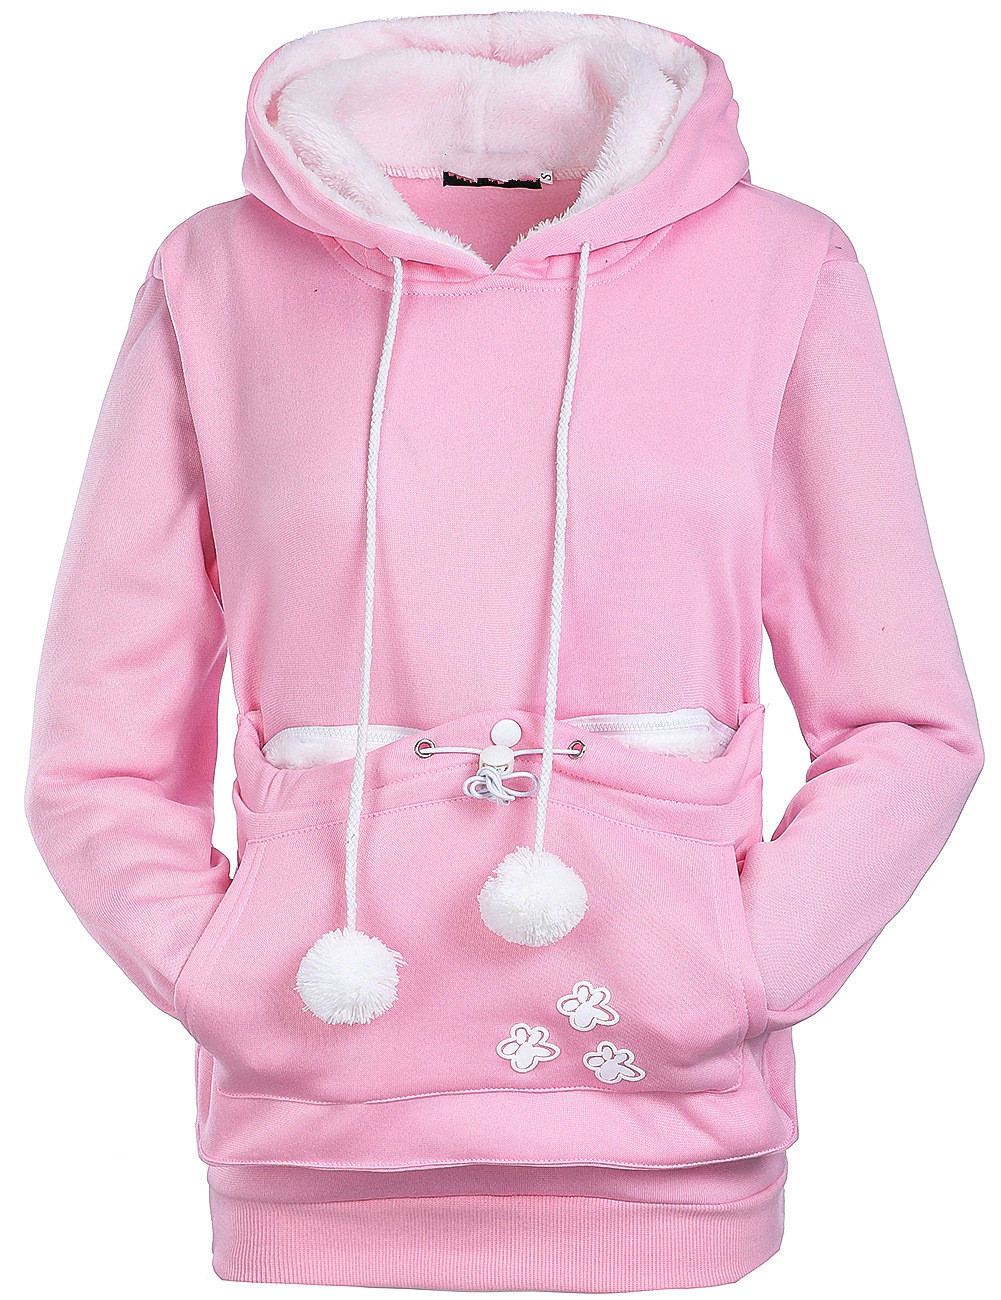 Korea style sweet cartoon dog girl fleece hooded long sleeve pullover woman sweatshirt hot sales big pockets